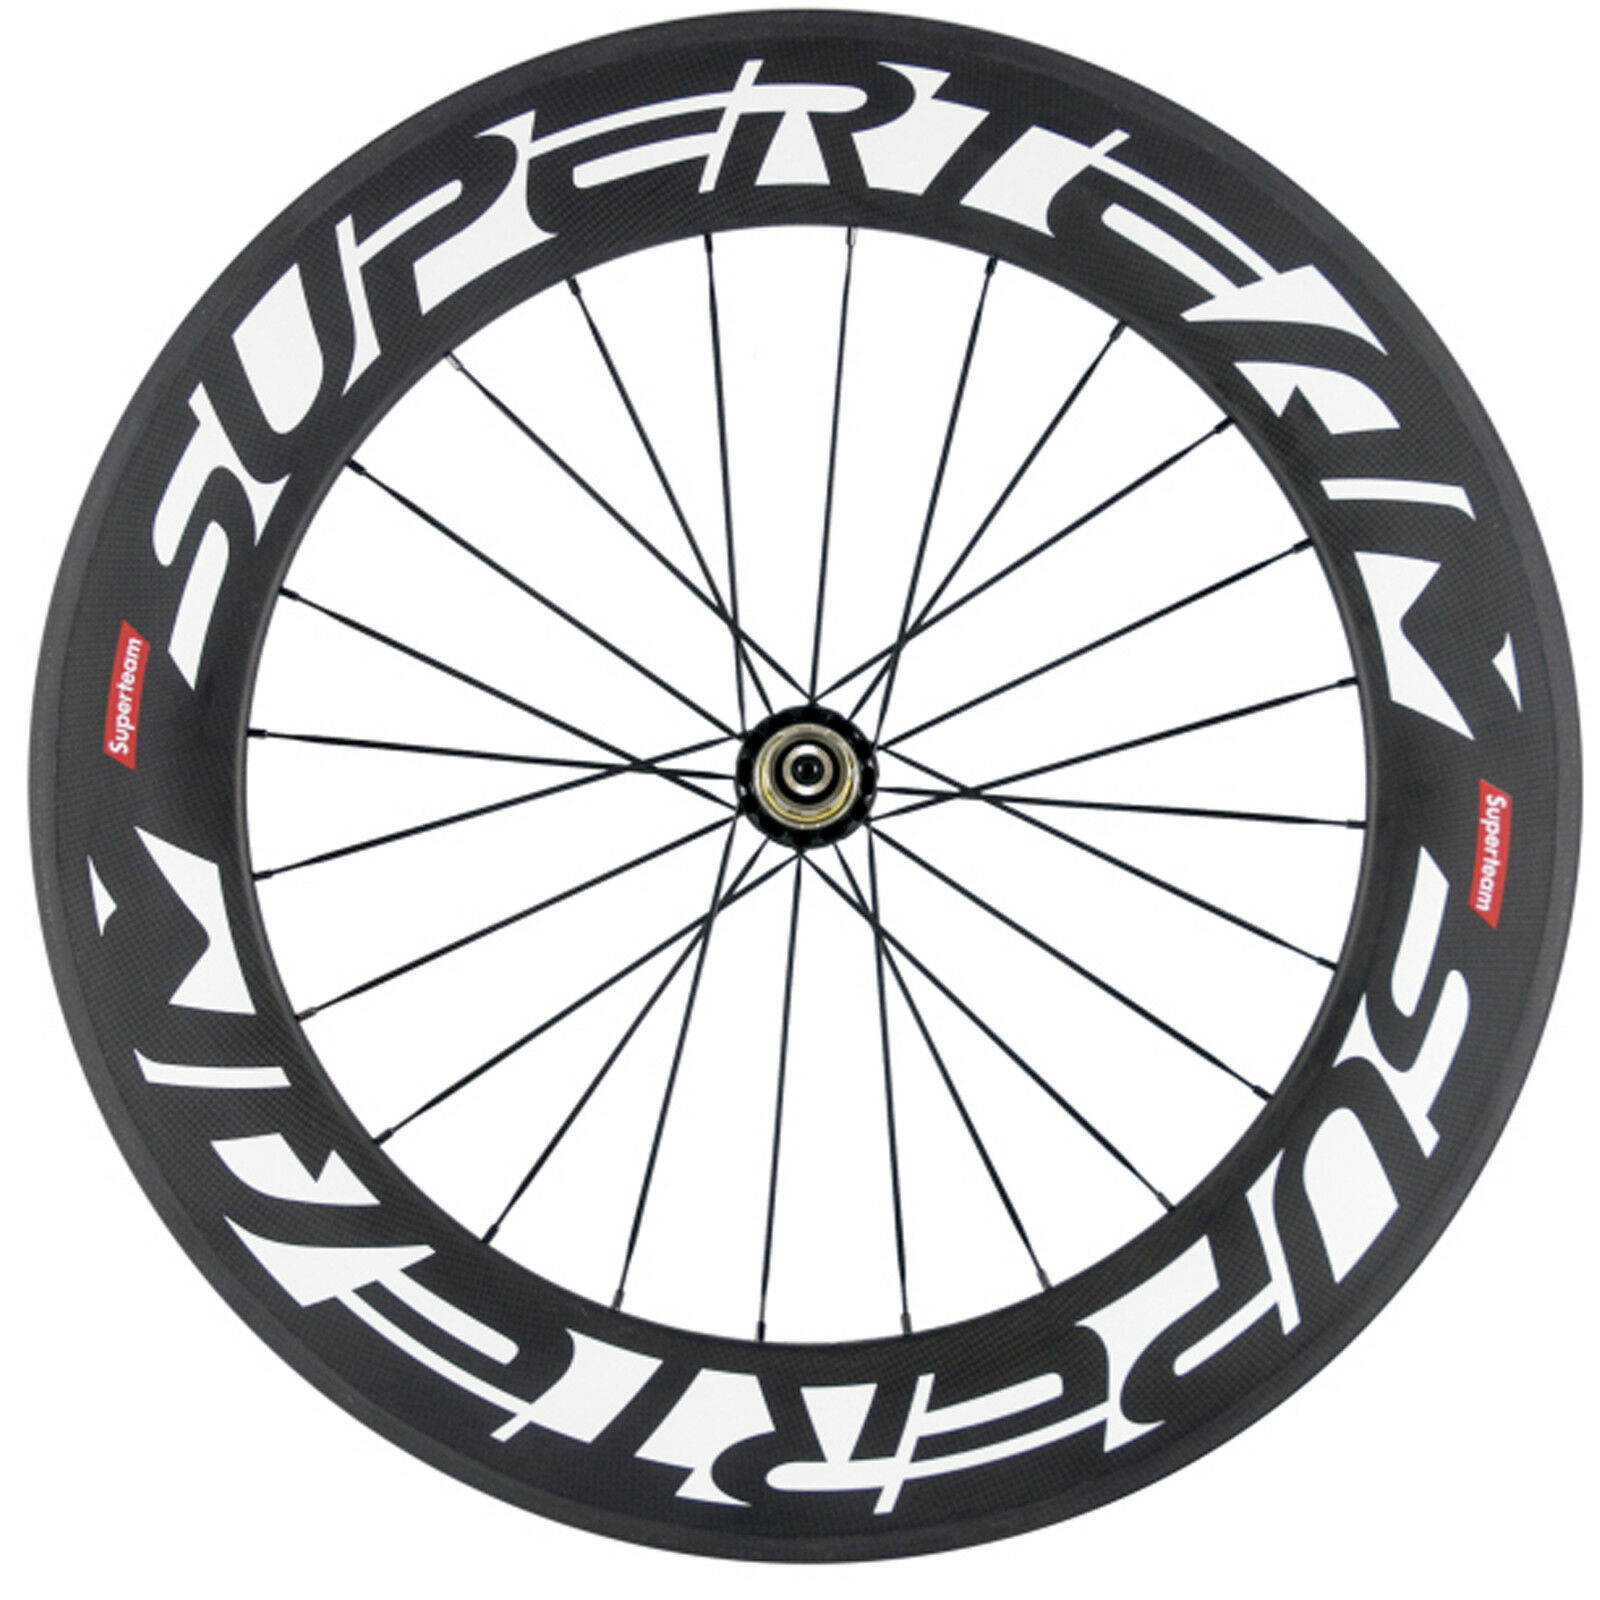 Superteam Rear Carbon Wheels 88mm Depth Road Bike R36 Hub Bicycle Wheels Rear